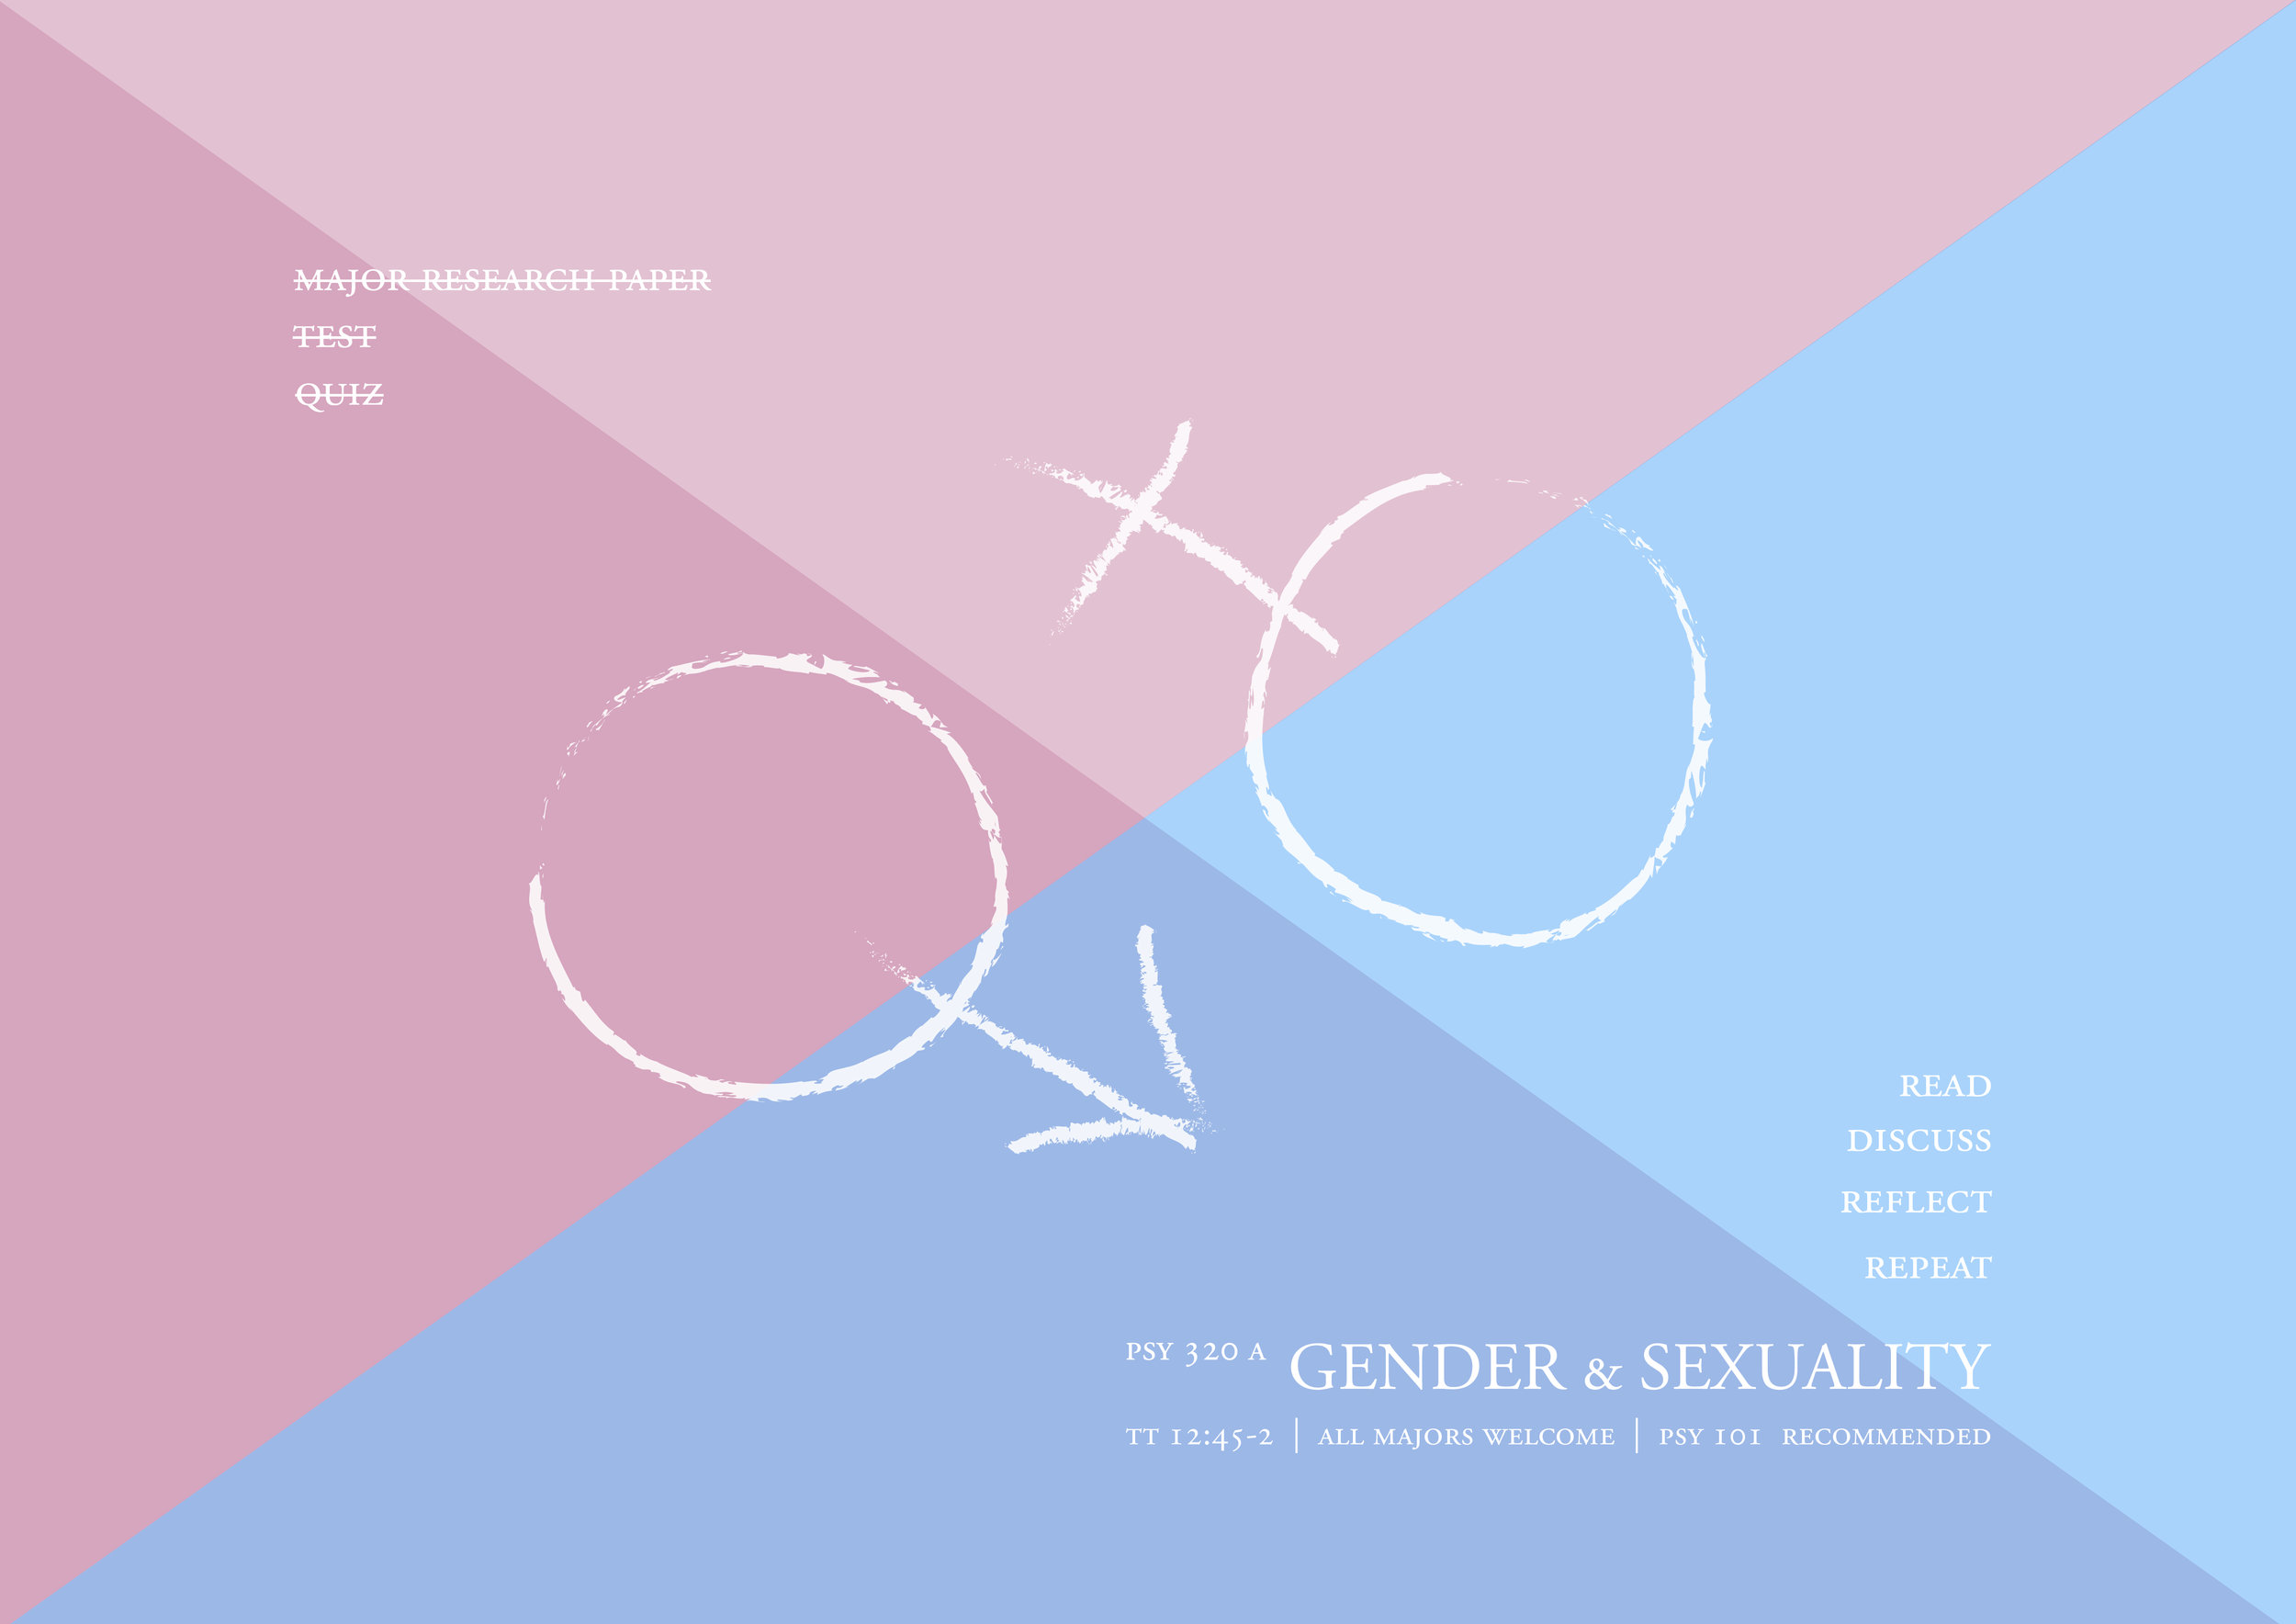 Gender & Sexuality Class_Final-01.jpg